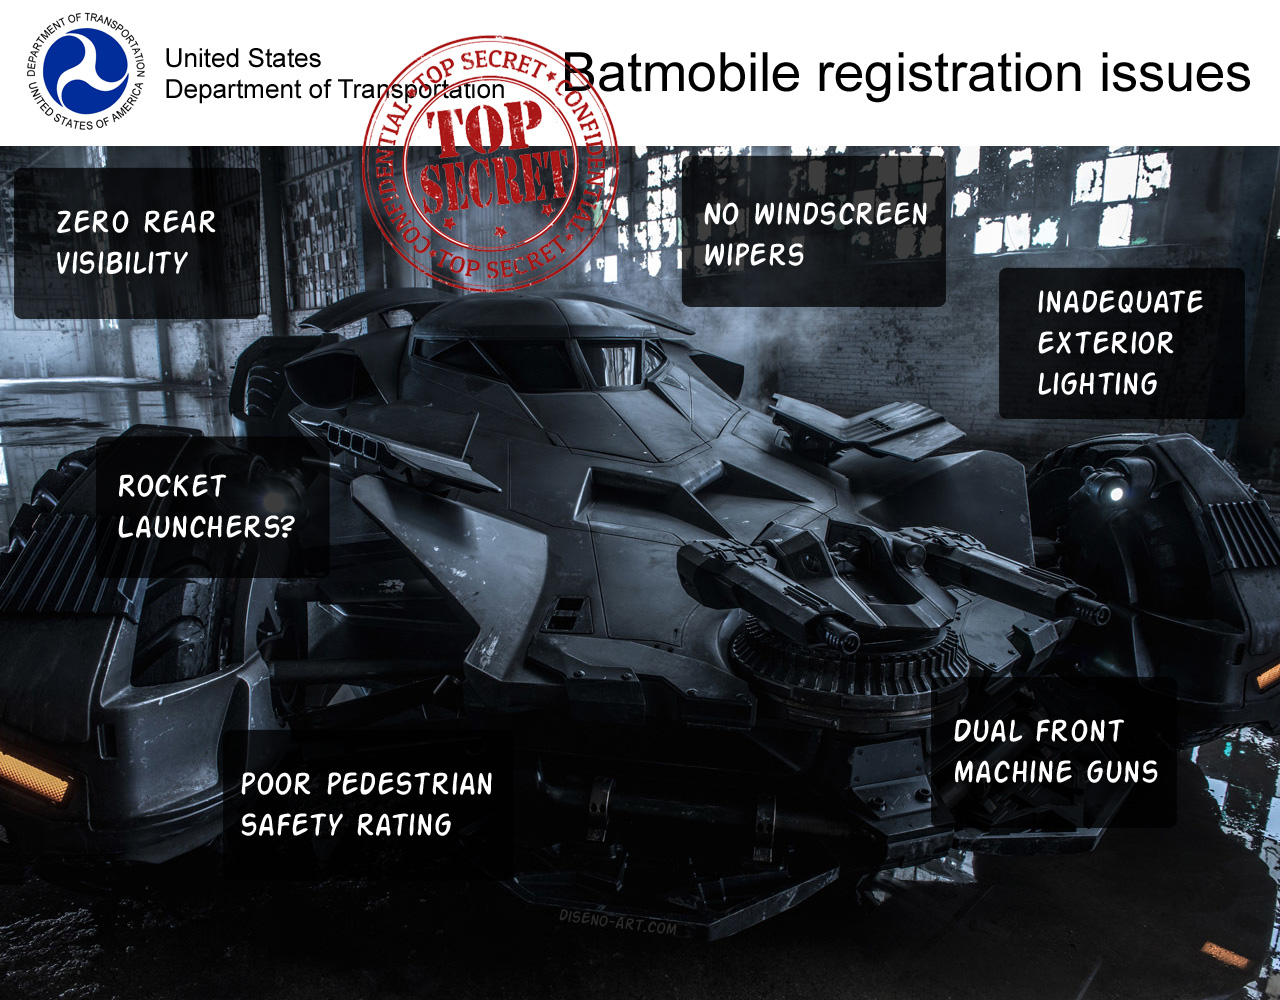 New Batmobile unveiled – Department of Transport may have issues